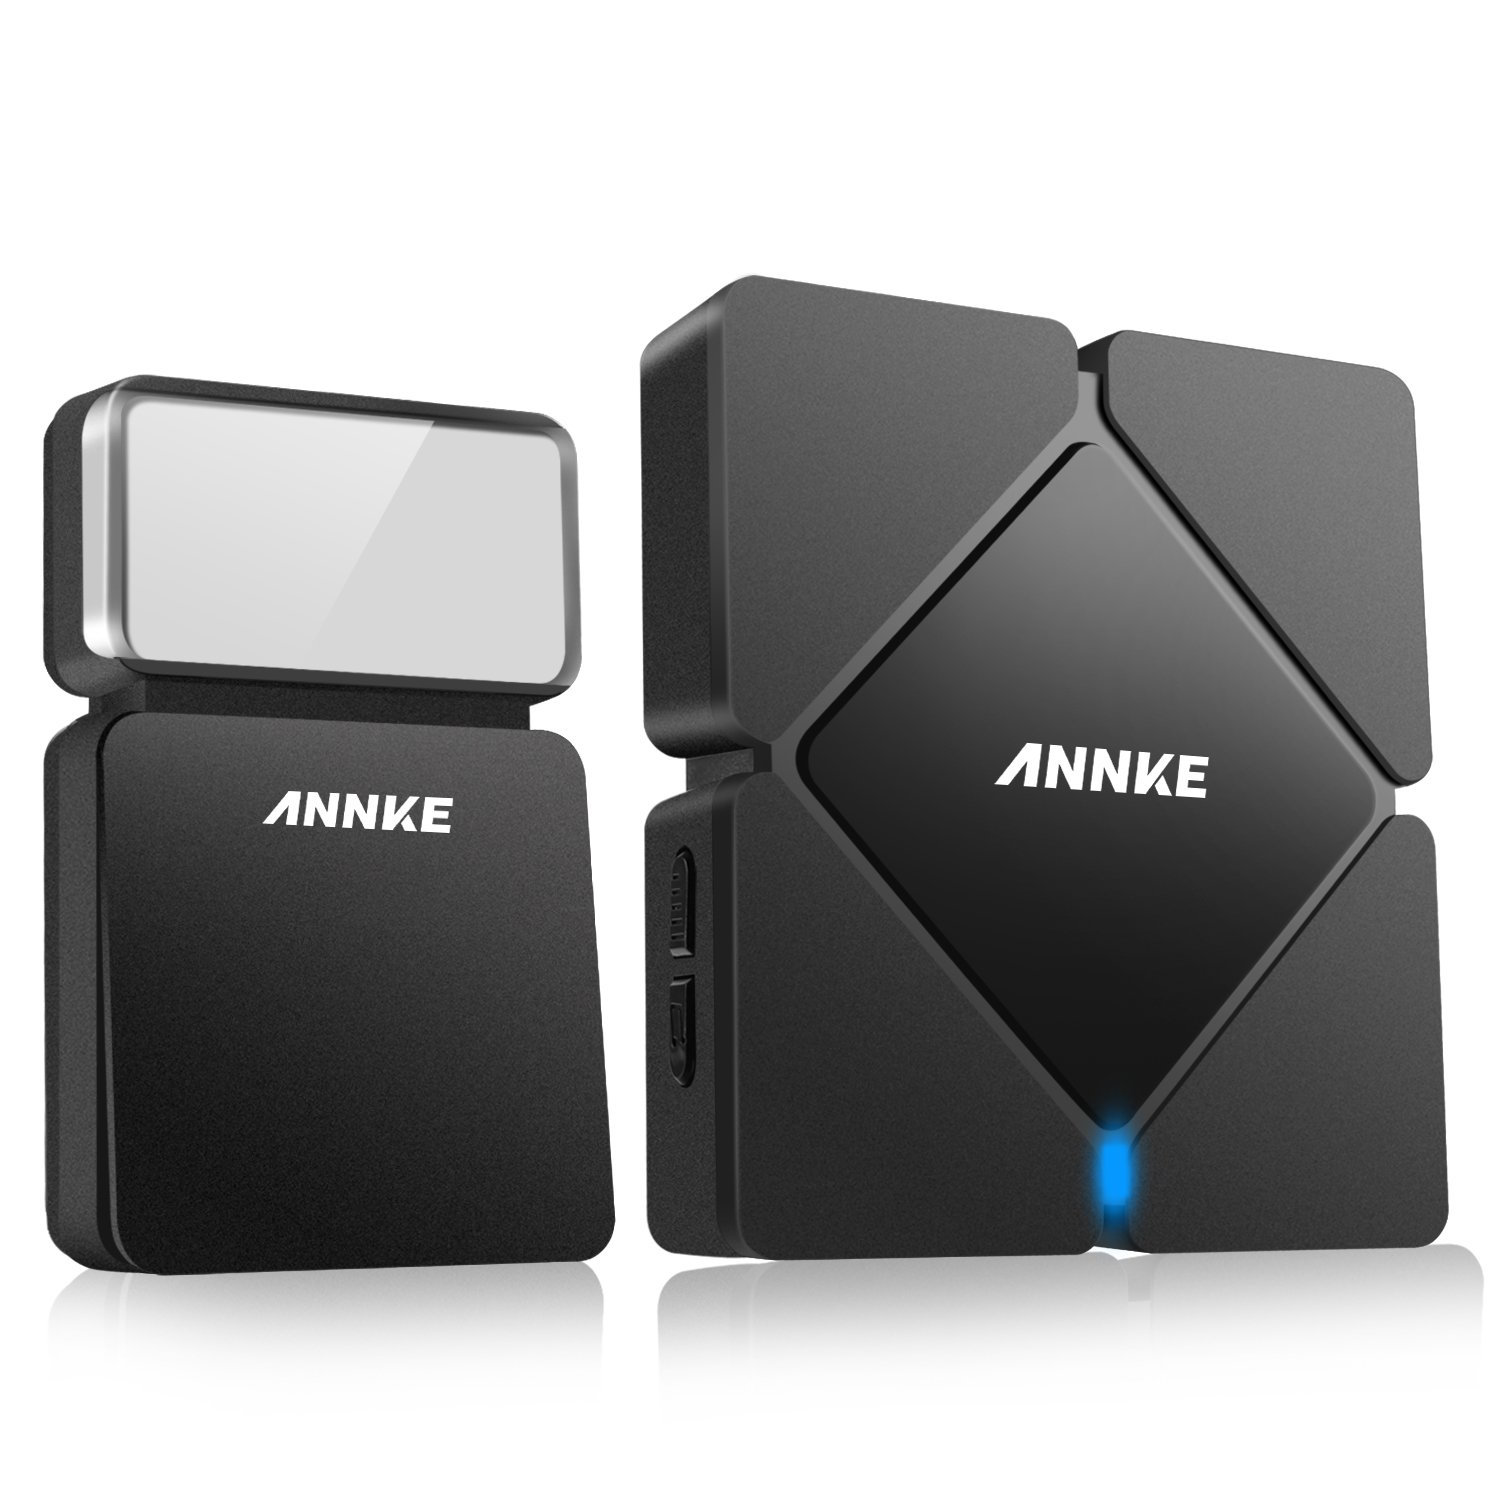 ANNKE Portable Stylish Battery-Free Wireless Doorbell, Weatherproof Door Bell Kit, 25 Selectable Melodies, 3 Adjustable Volume Levels, 100m Operating